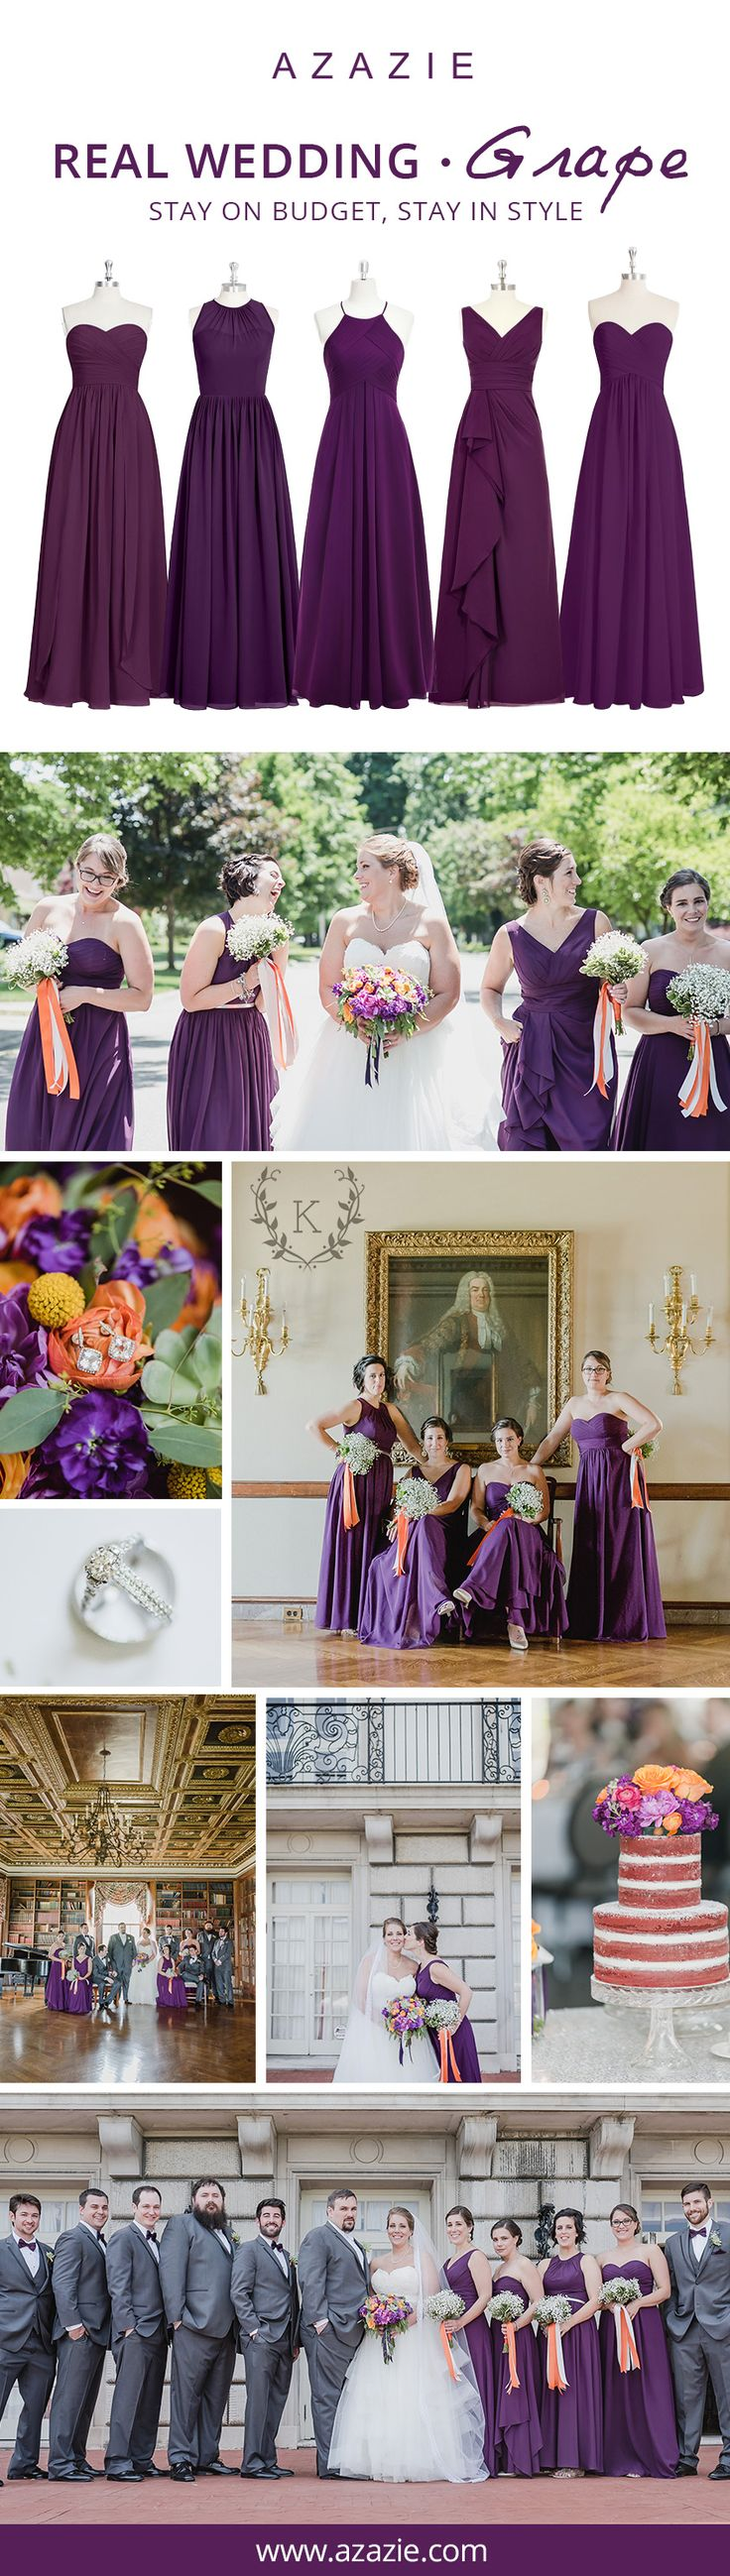 The epitome of romance and just like a fine wine, Grape is one of the most popular colors this Fall season. Get inspiration for your Autumn wedding with this glamorous Grape color for your bridesmaids. Even better let your girls choose from over 150 styles and mix-and-match, all for $150 per gown or less!